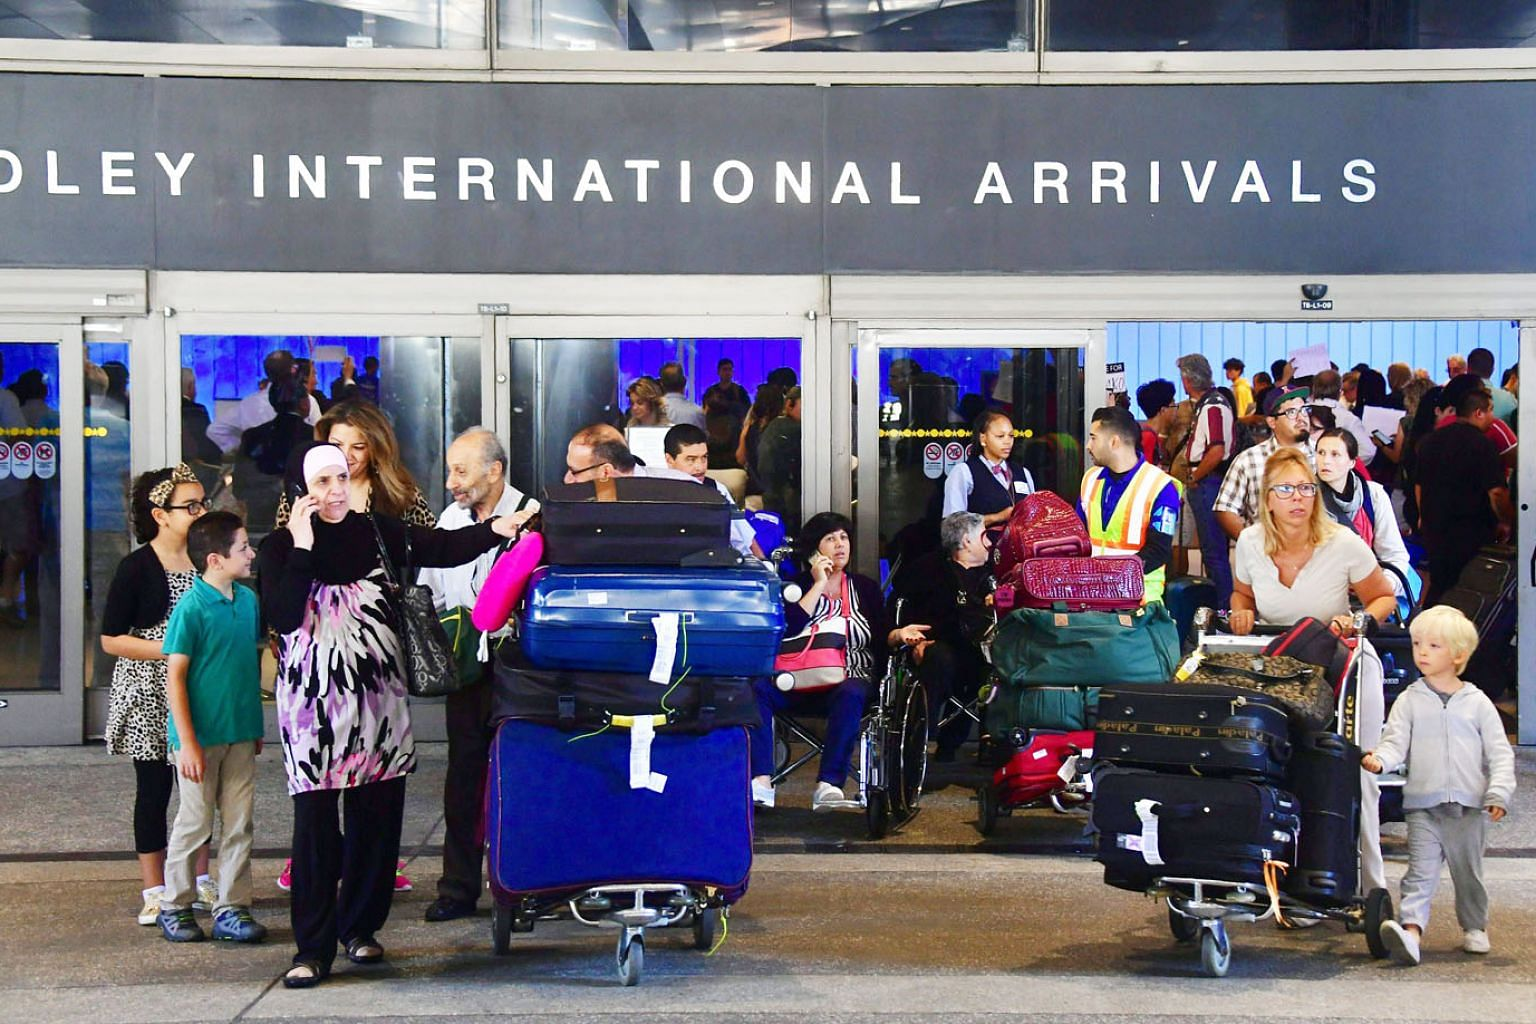 People leaving Los Angeles International Airport last month, where they were met by activists protesting against Mr Donald Trump's ban temporarily barring entry into the United States from Libya, Iran, Somalia, Sudan, Syria and Yemen.